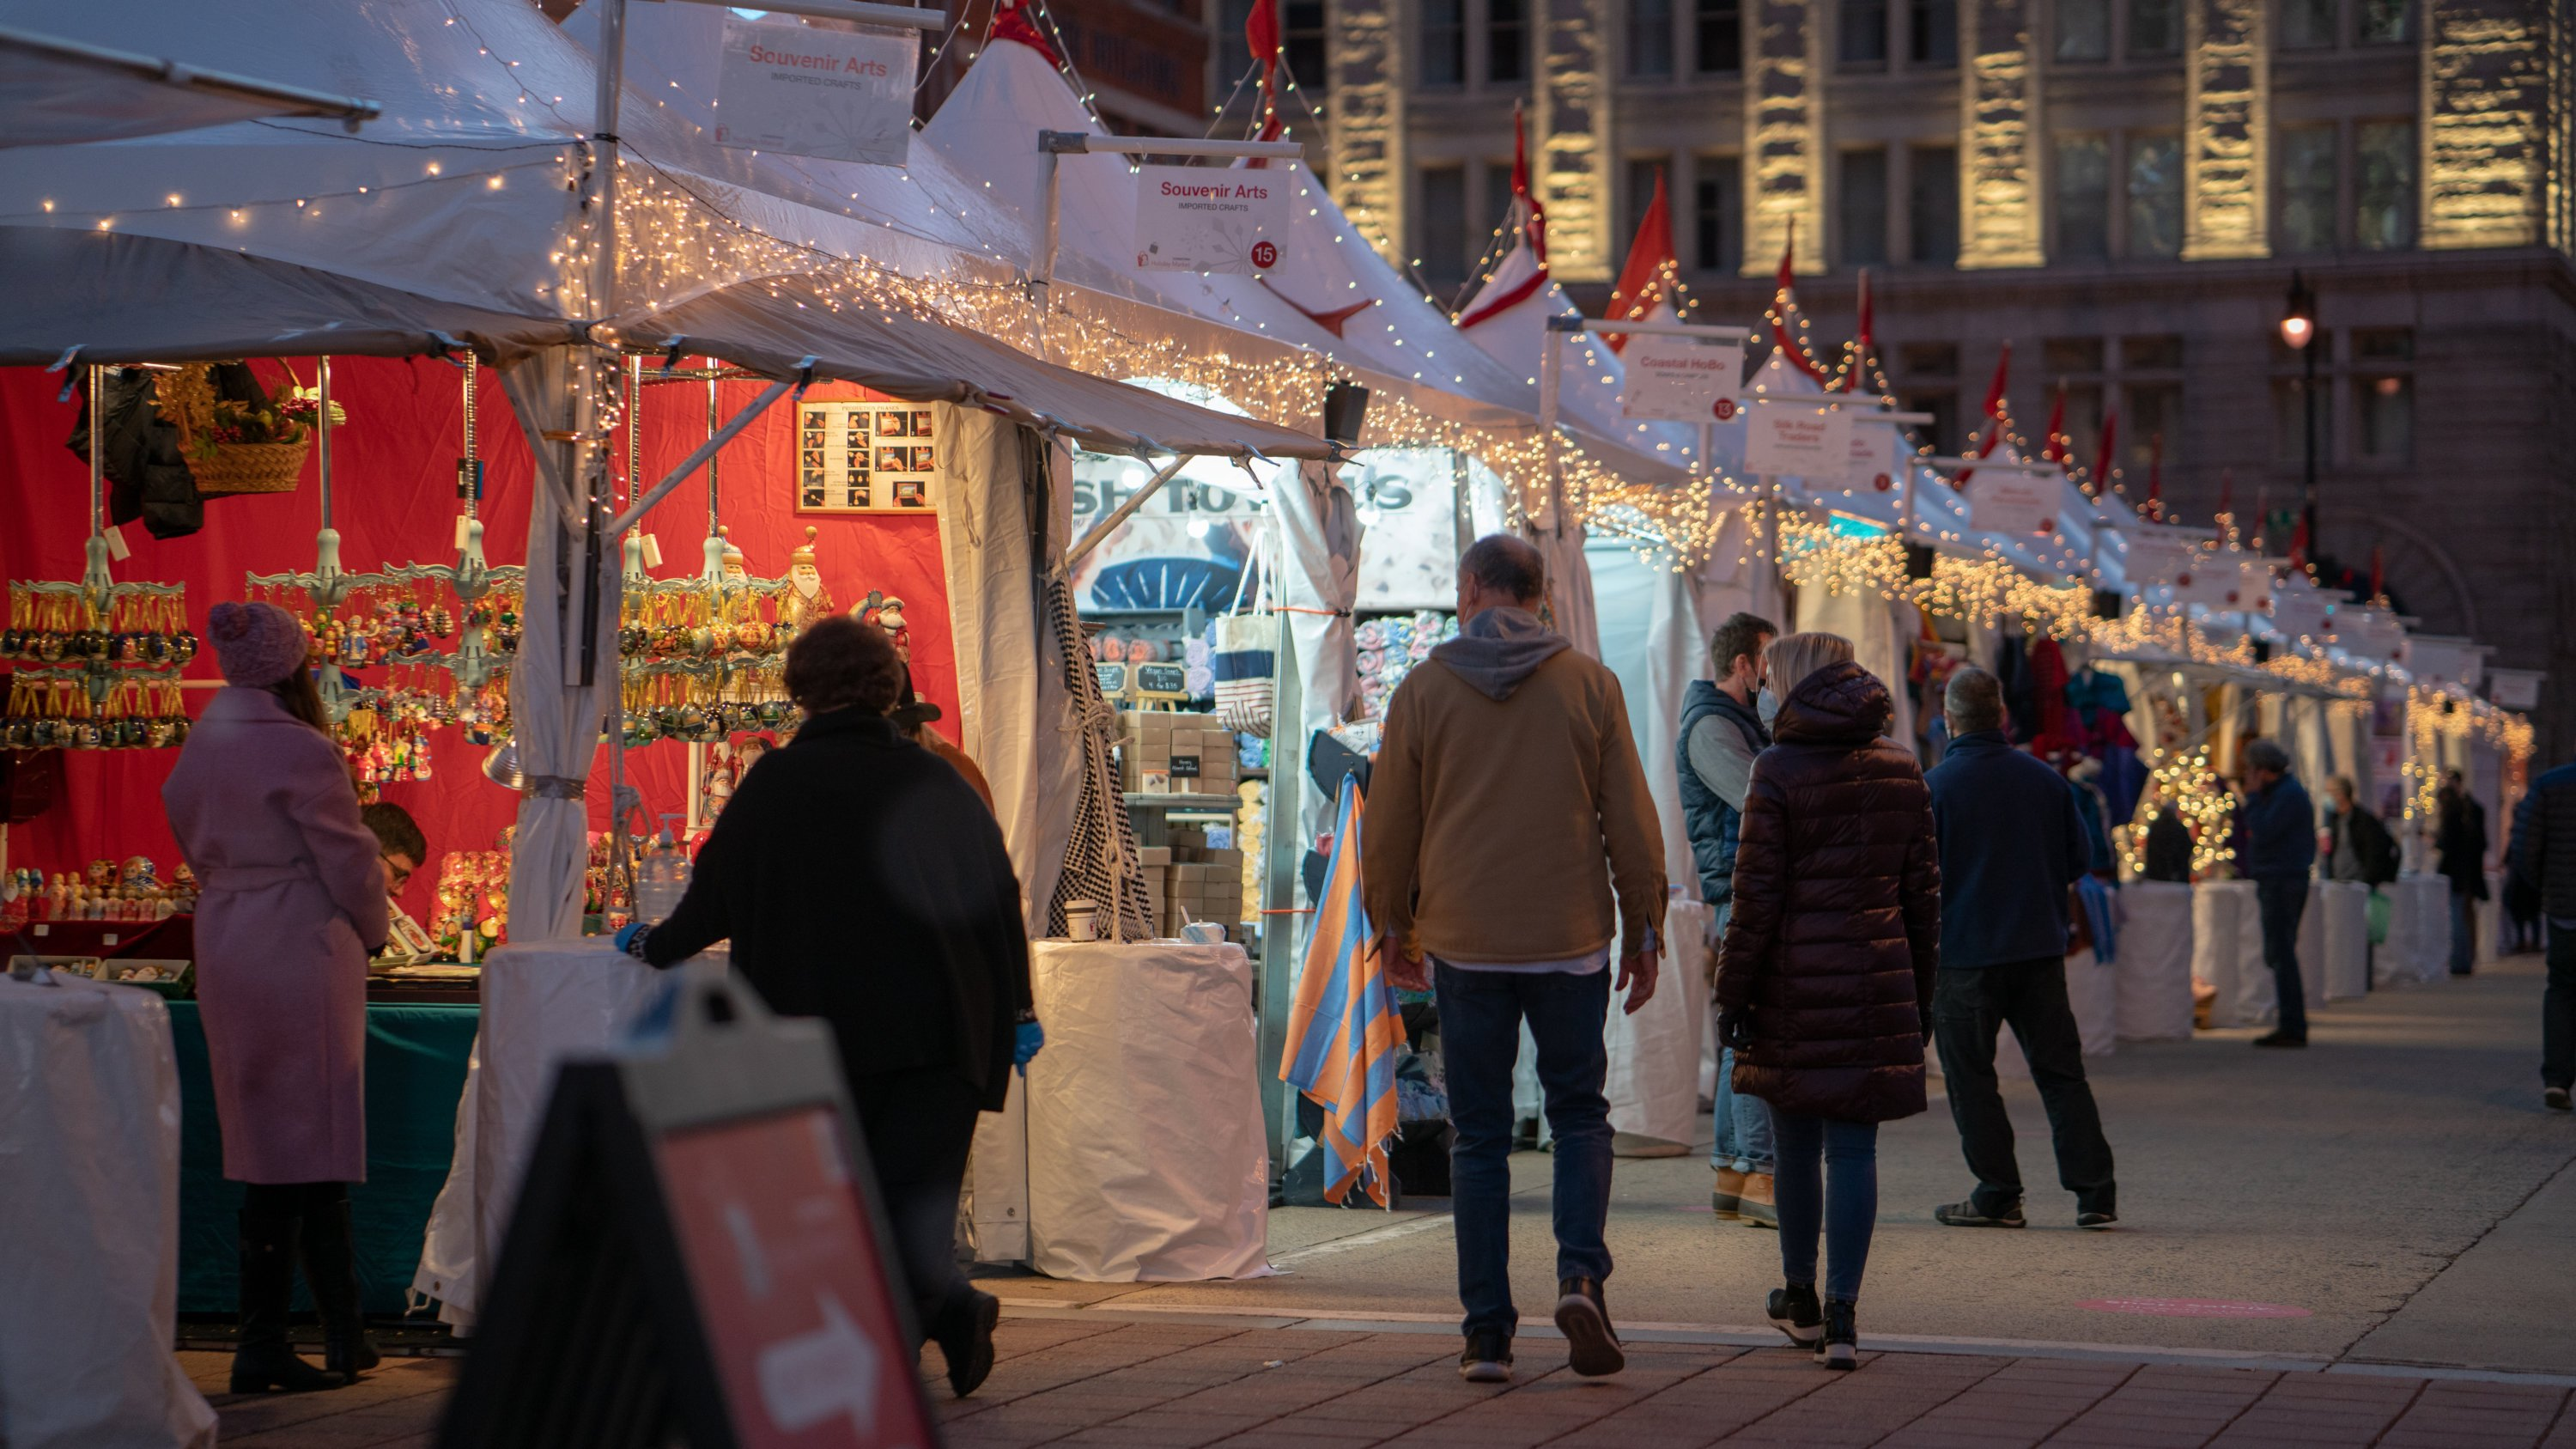 The Downtown Holiday Market is expanding to two blocks this year. Photo by InsterStellarStudios.